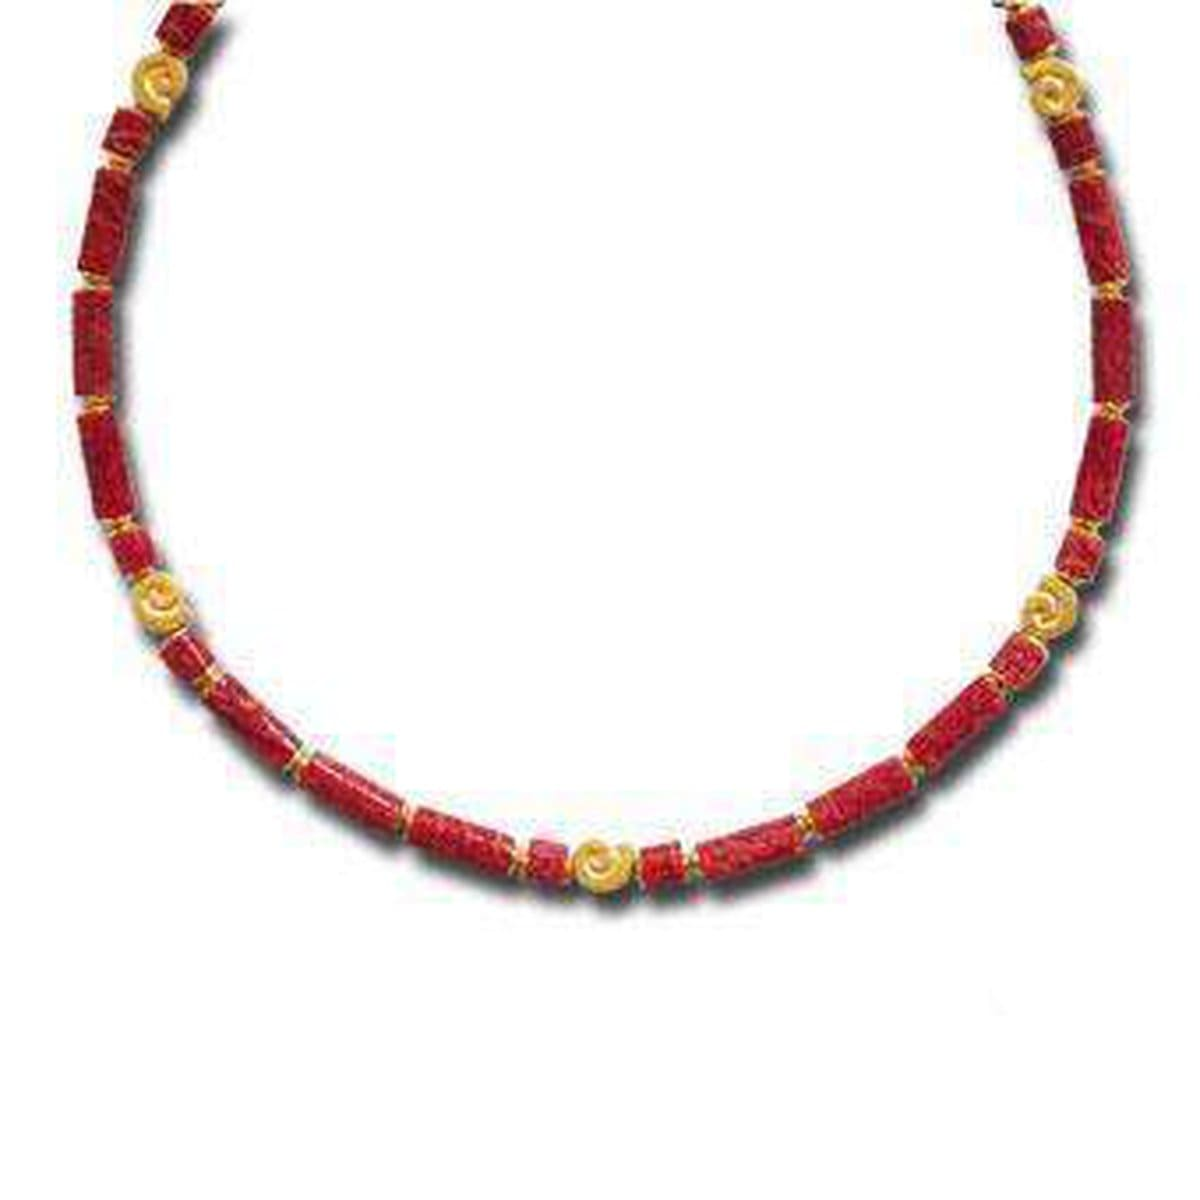 Marie Red Stone Necklace - 85973296-Bernd Wolf-Renee Taylor Gallery